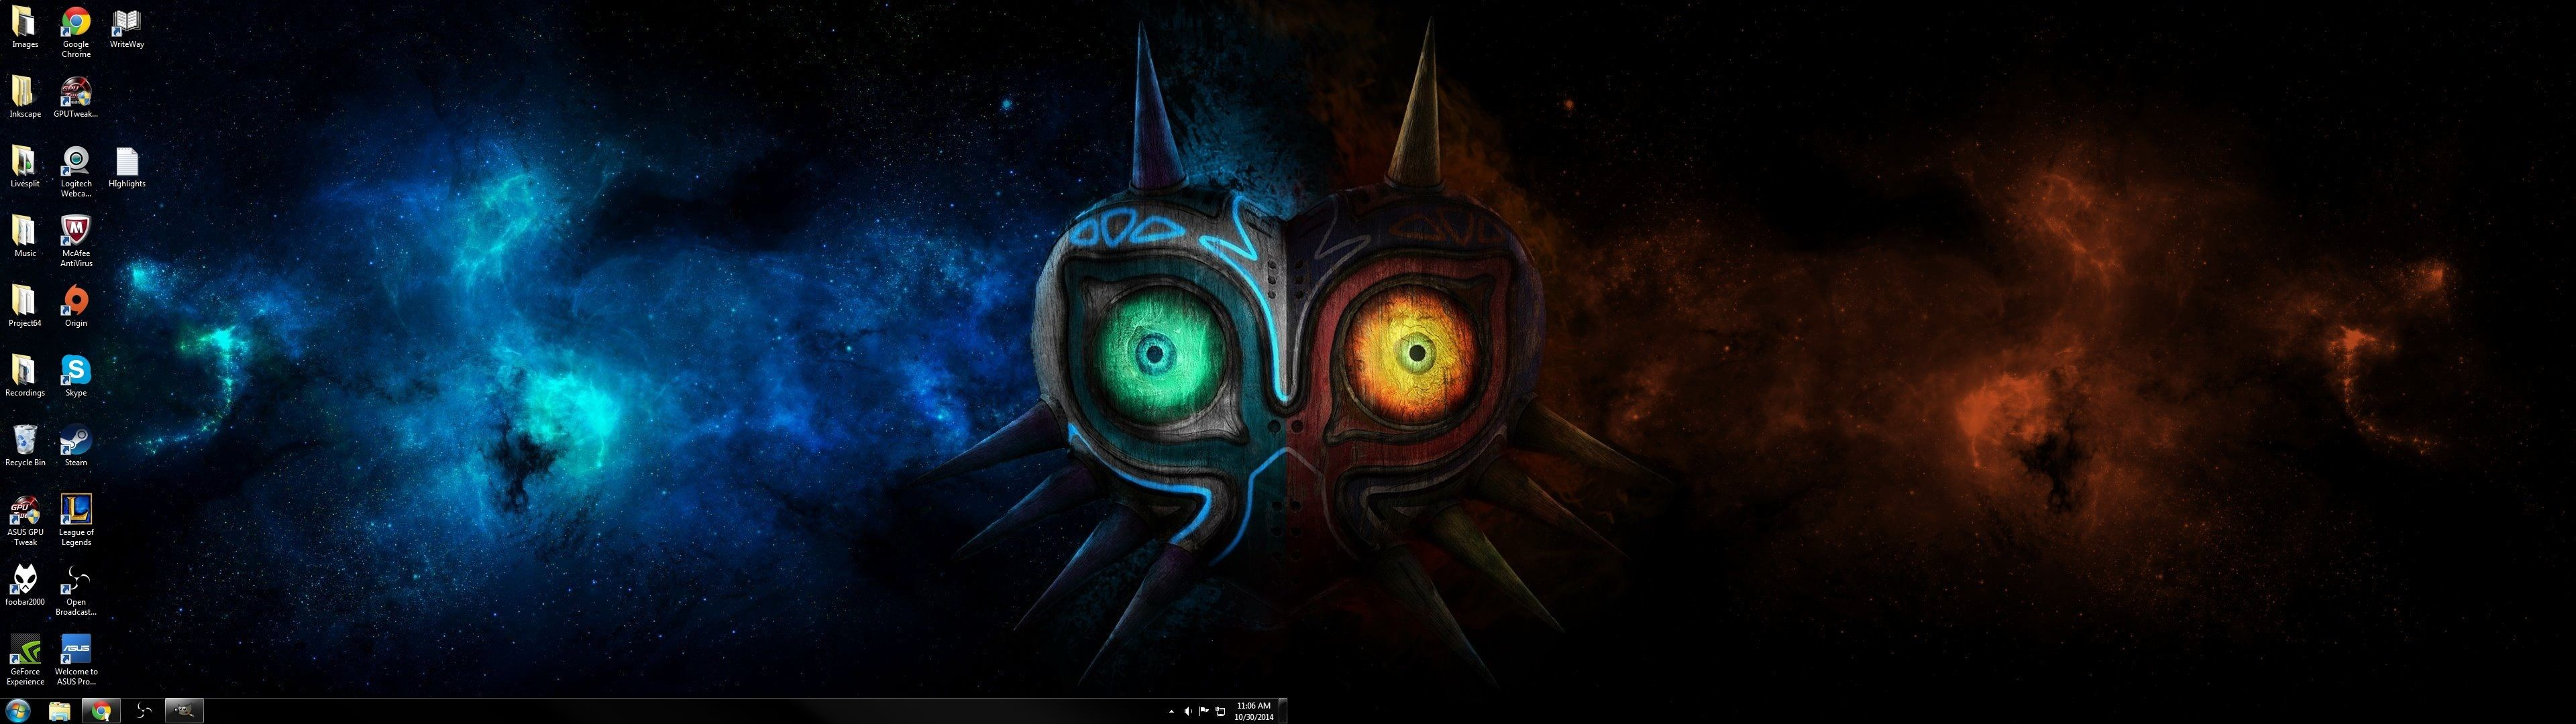 3840x1080 So I combined two desktops to make a dual monitor desktop. - Imgur